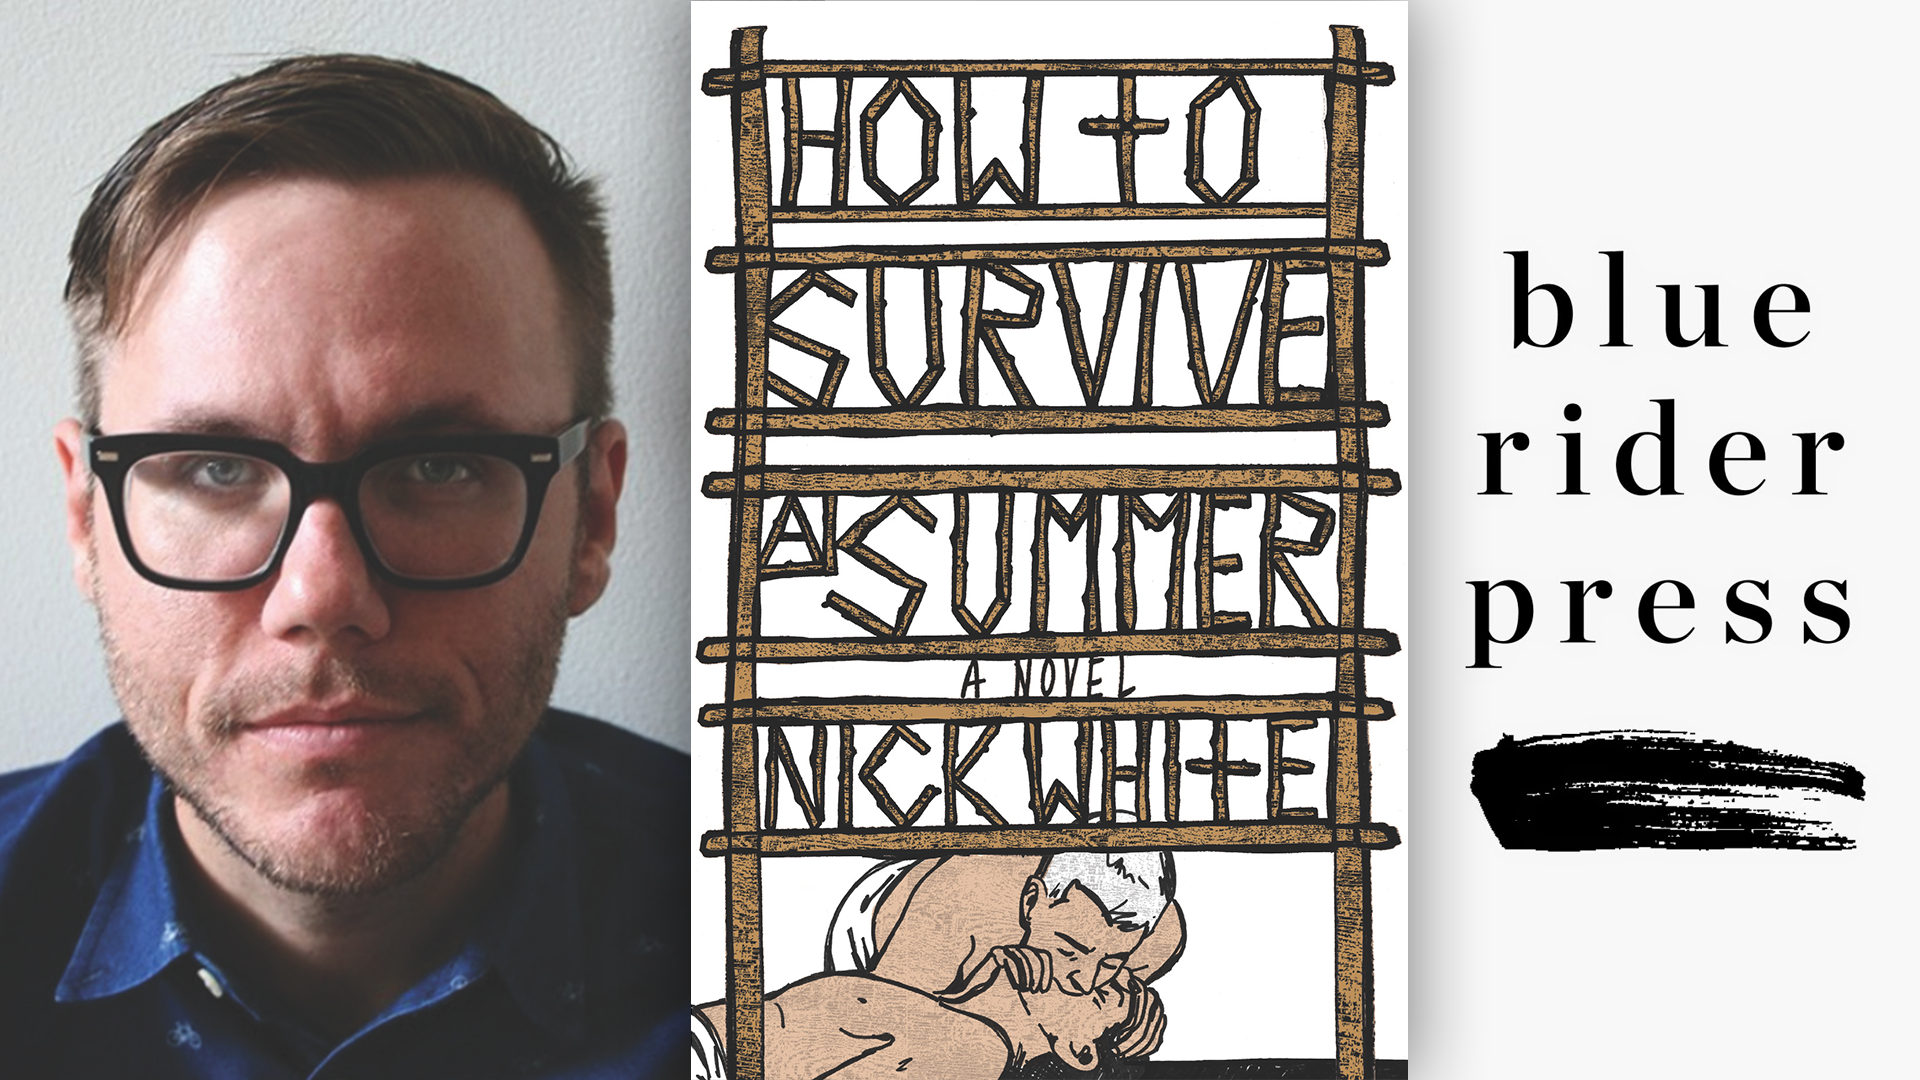 Nick White, the cover of HOW TO SURVIVE A SUMMER and the blue rider press logo; links to news story Nick White's debut novel, 'How to Survive a Summer,' hit shelves June 6